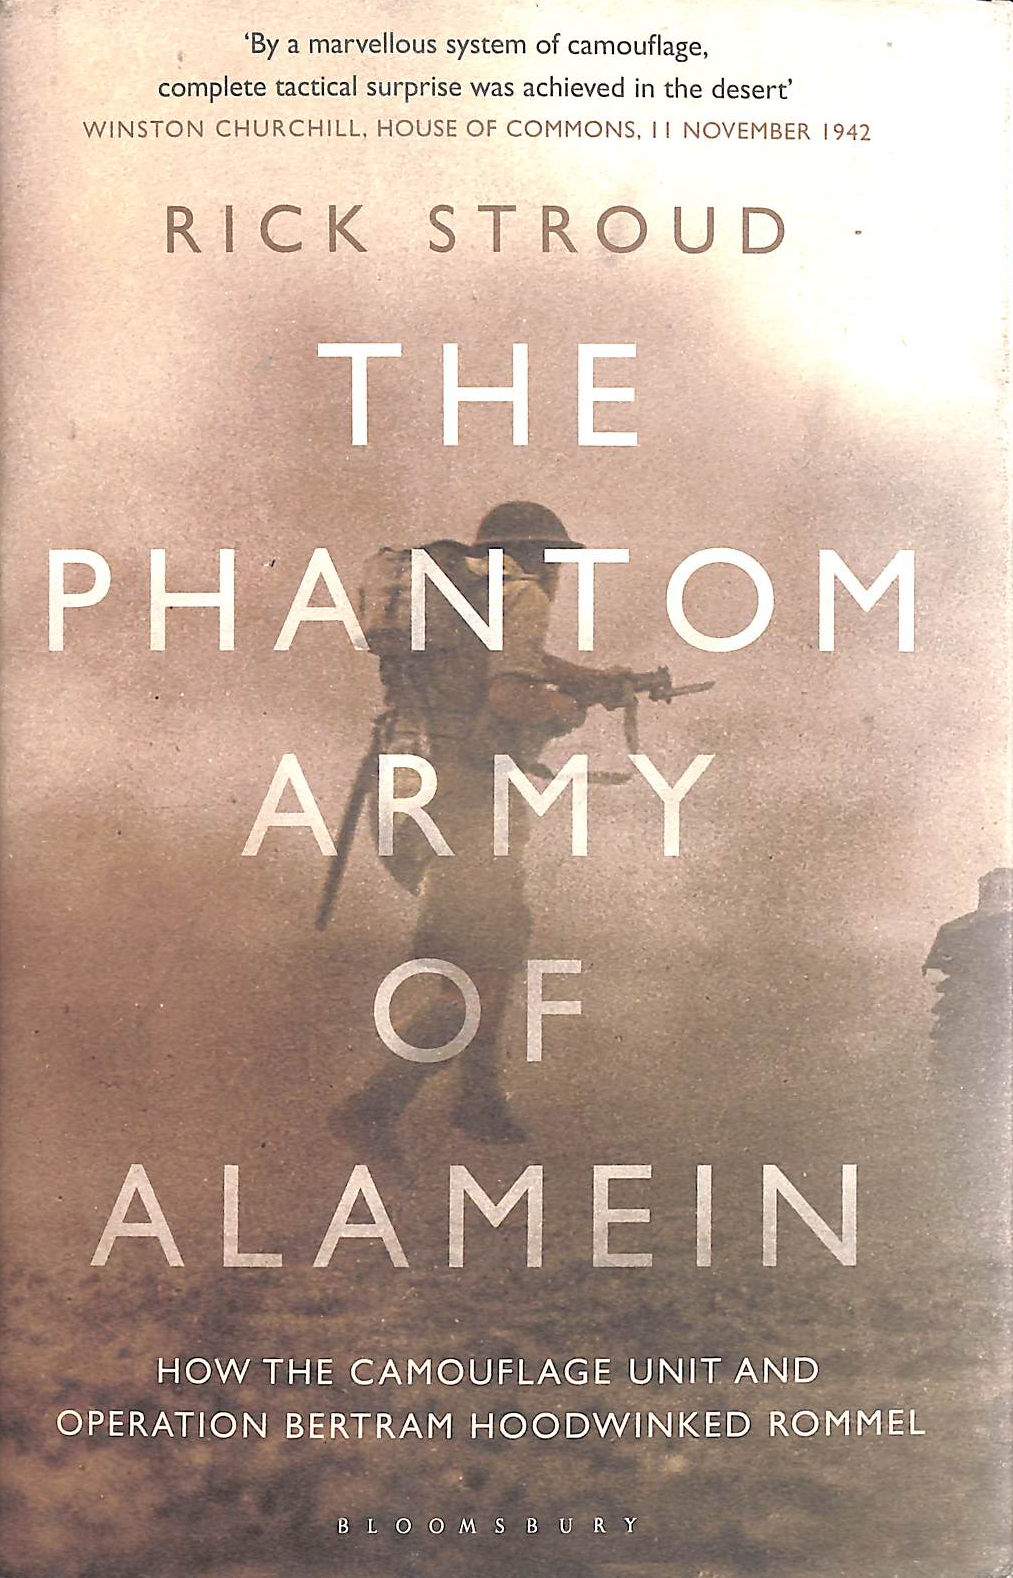 Image for The Phantom Army Of Alamein: How The Camouflage Unit And Operation Bertram Hoodwinked Rommel